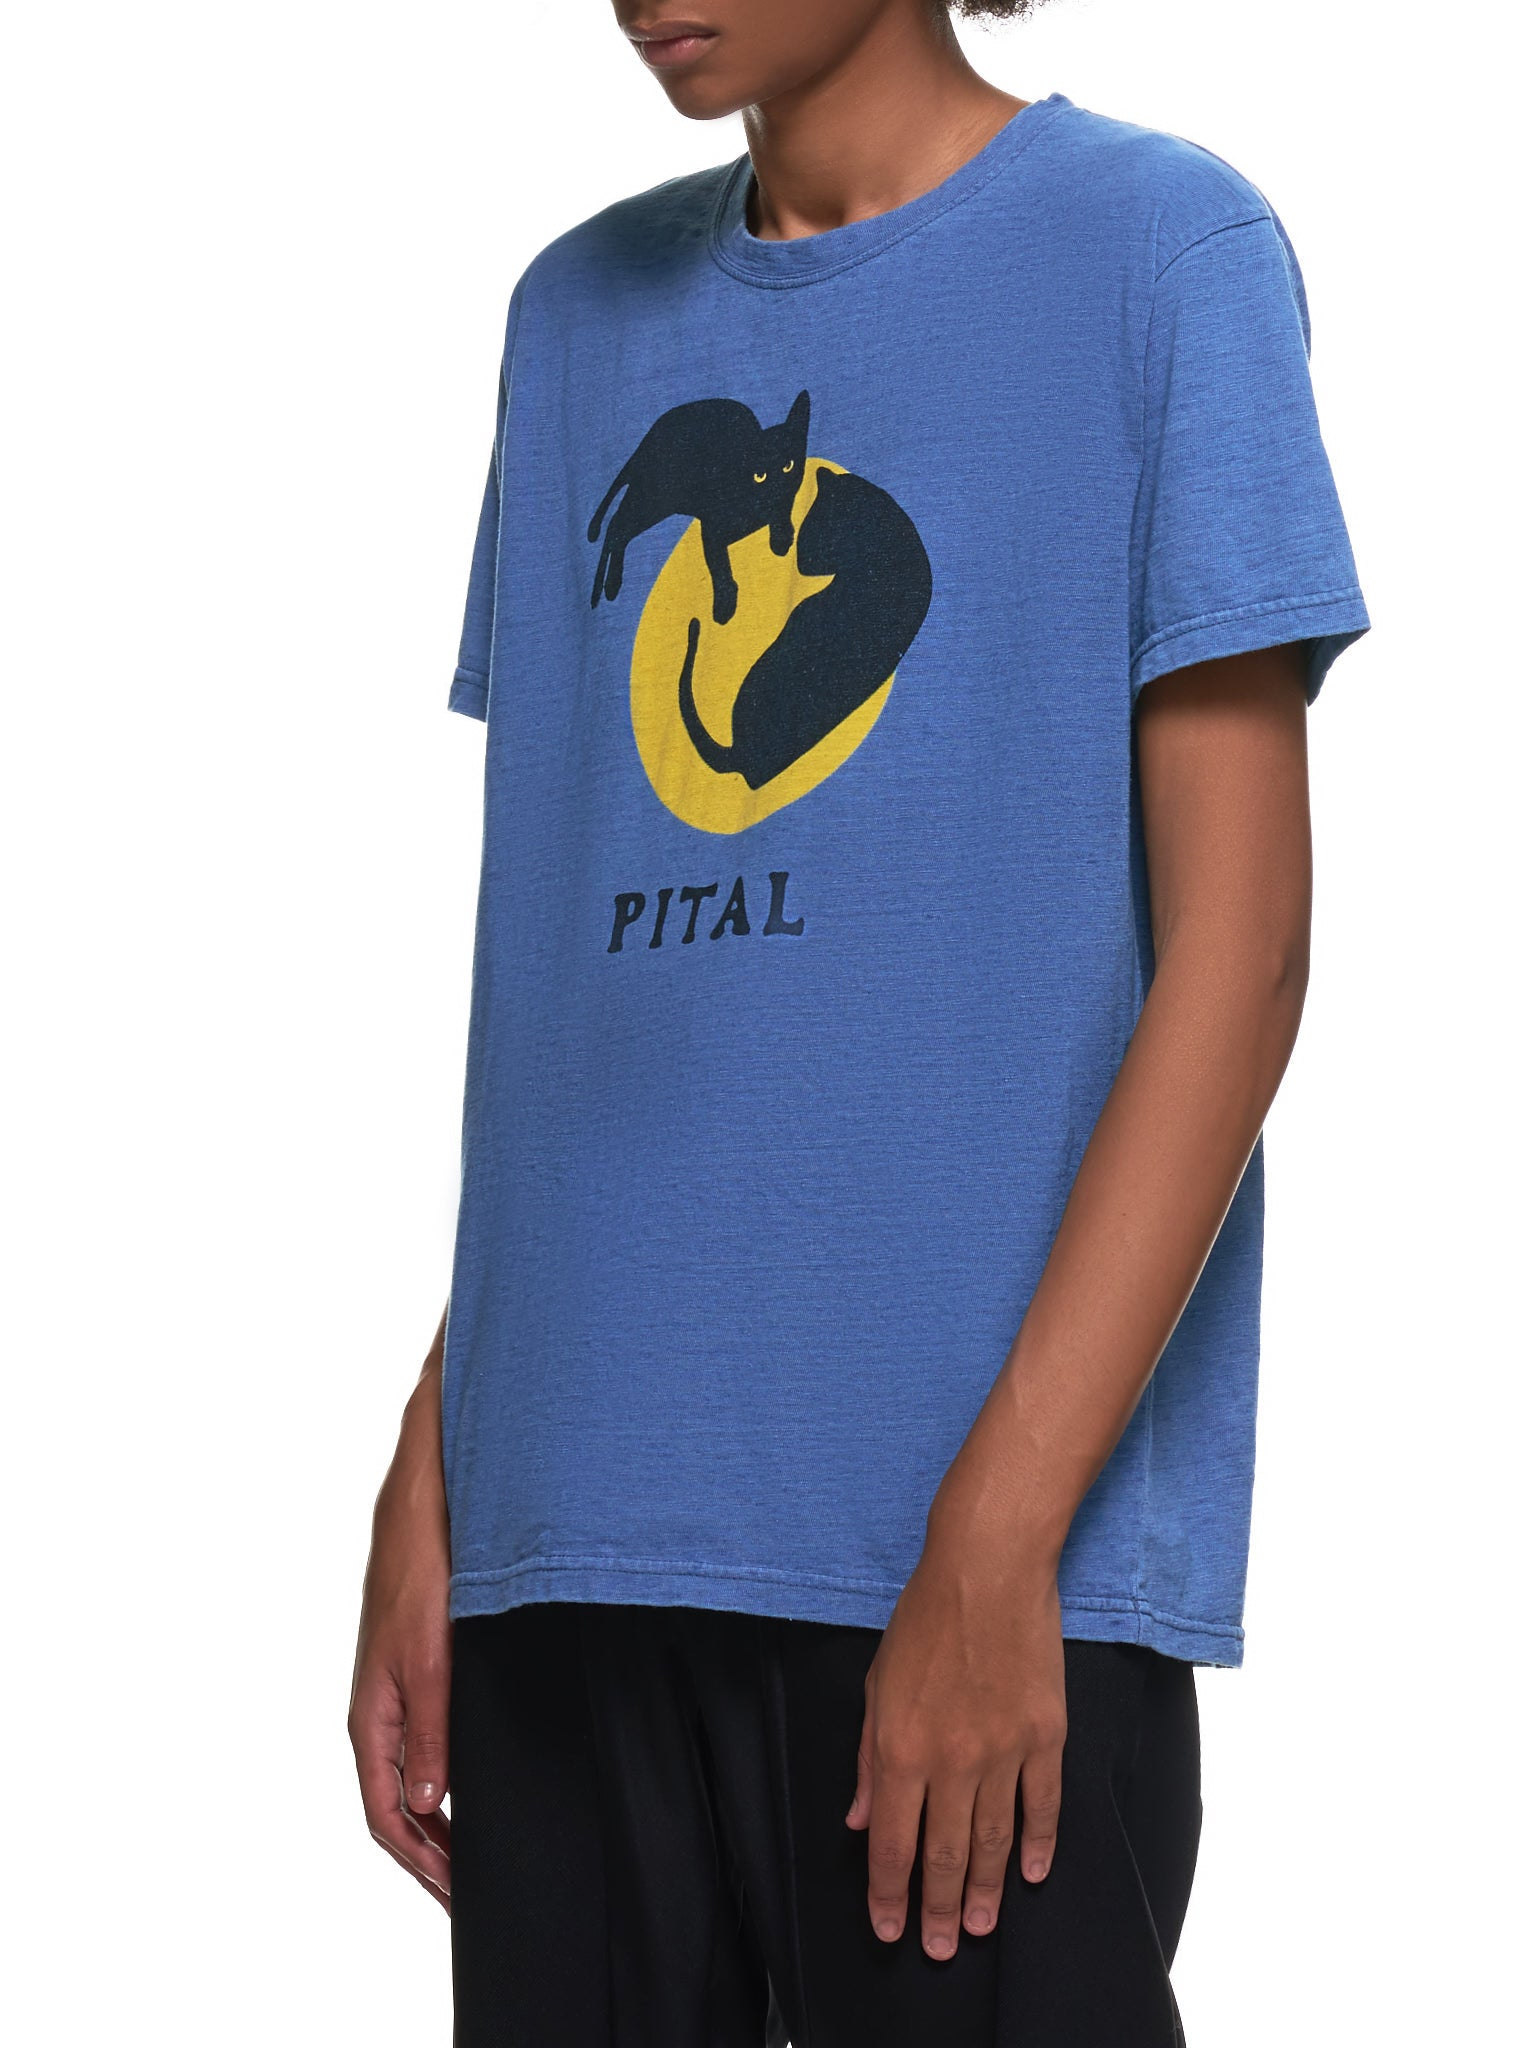 Pital Cat Smiley Face Shirt (EK-928-INDIGO)